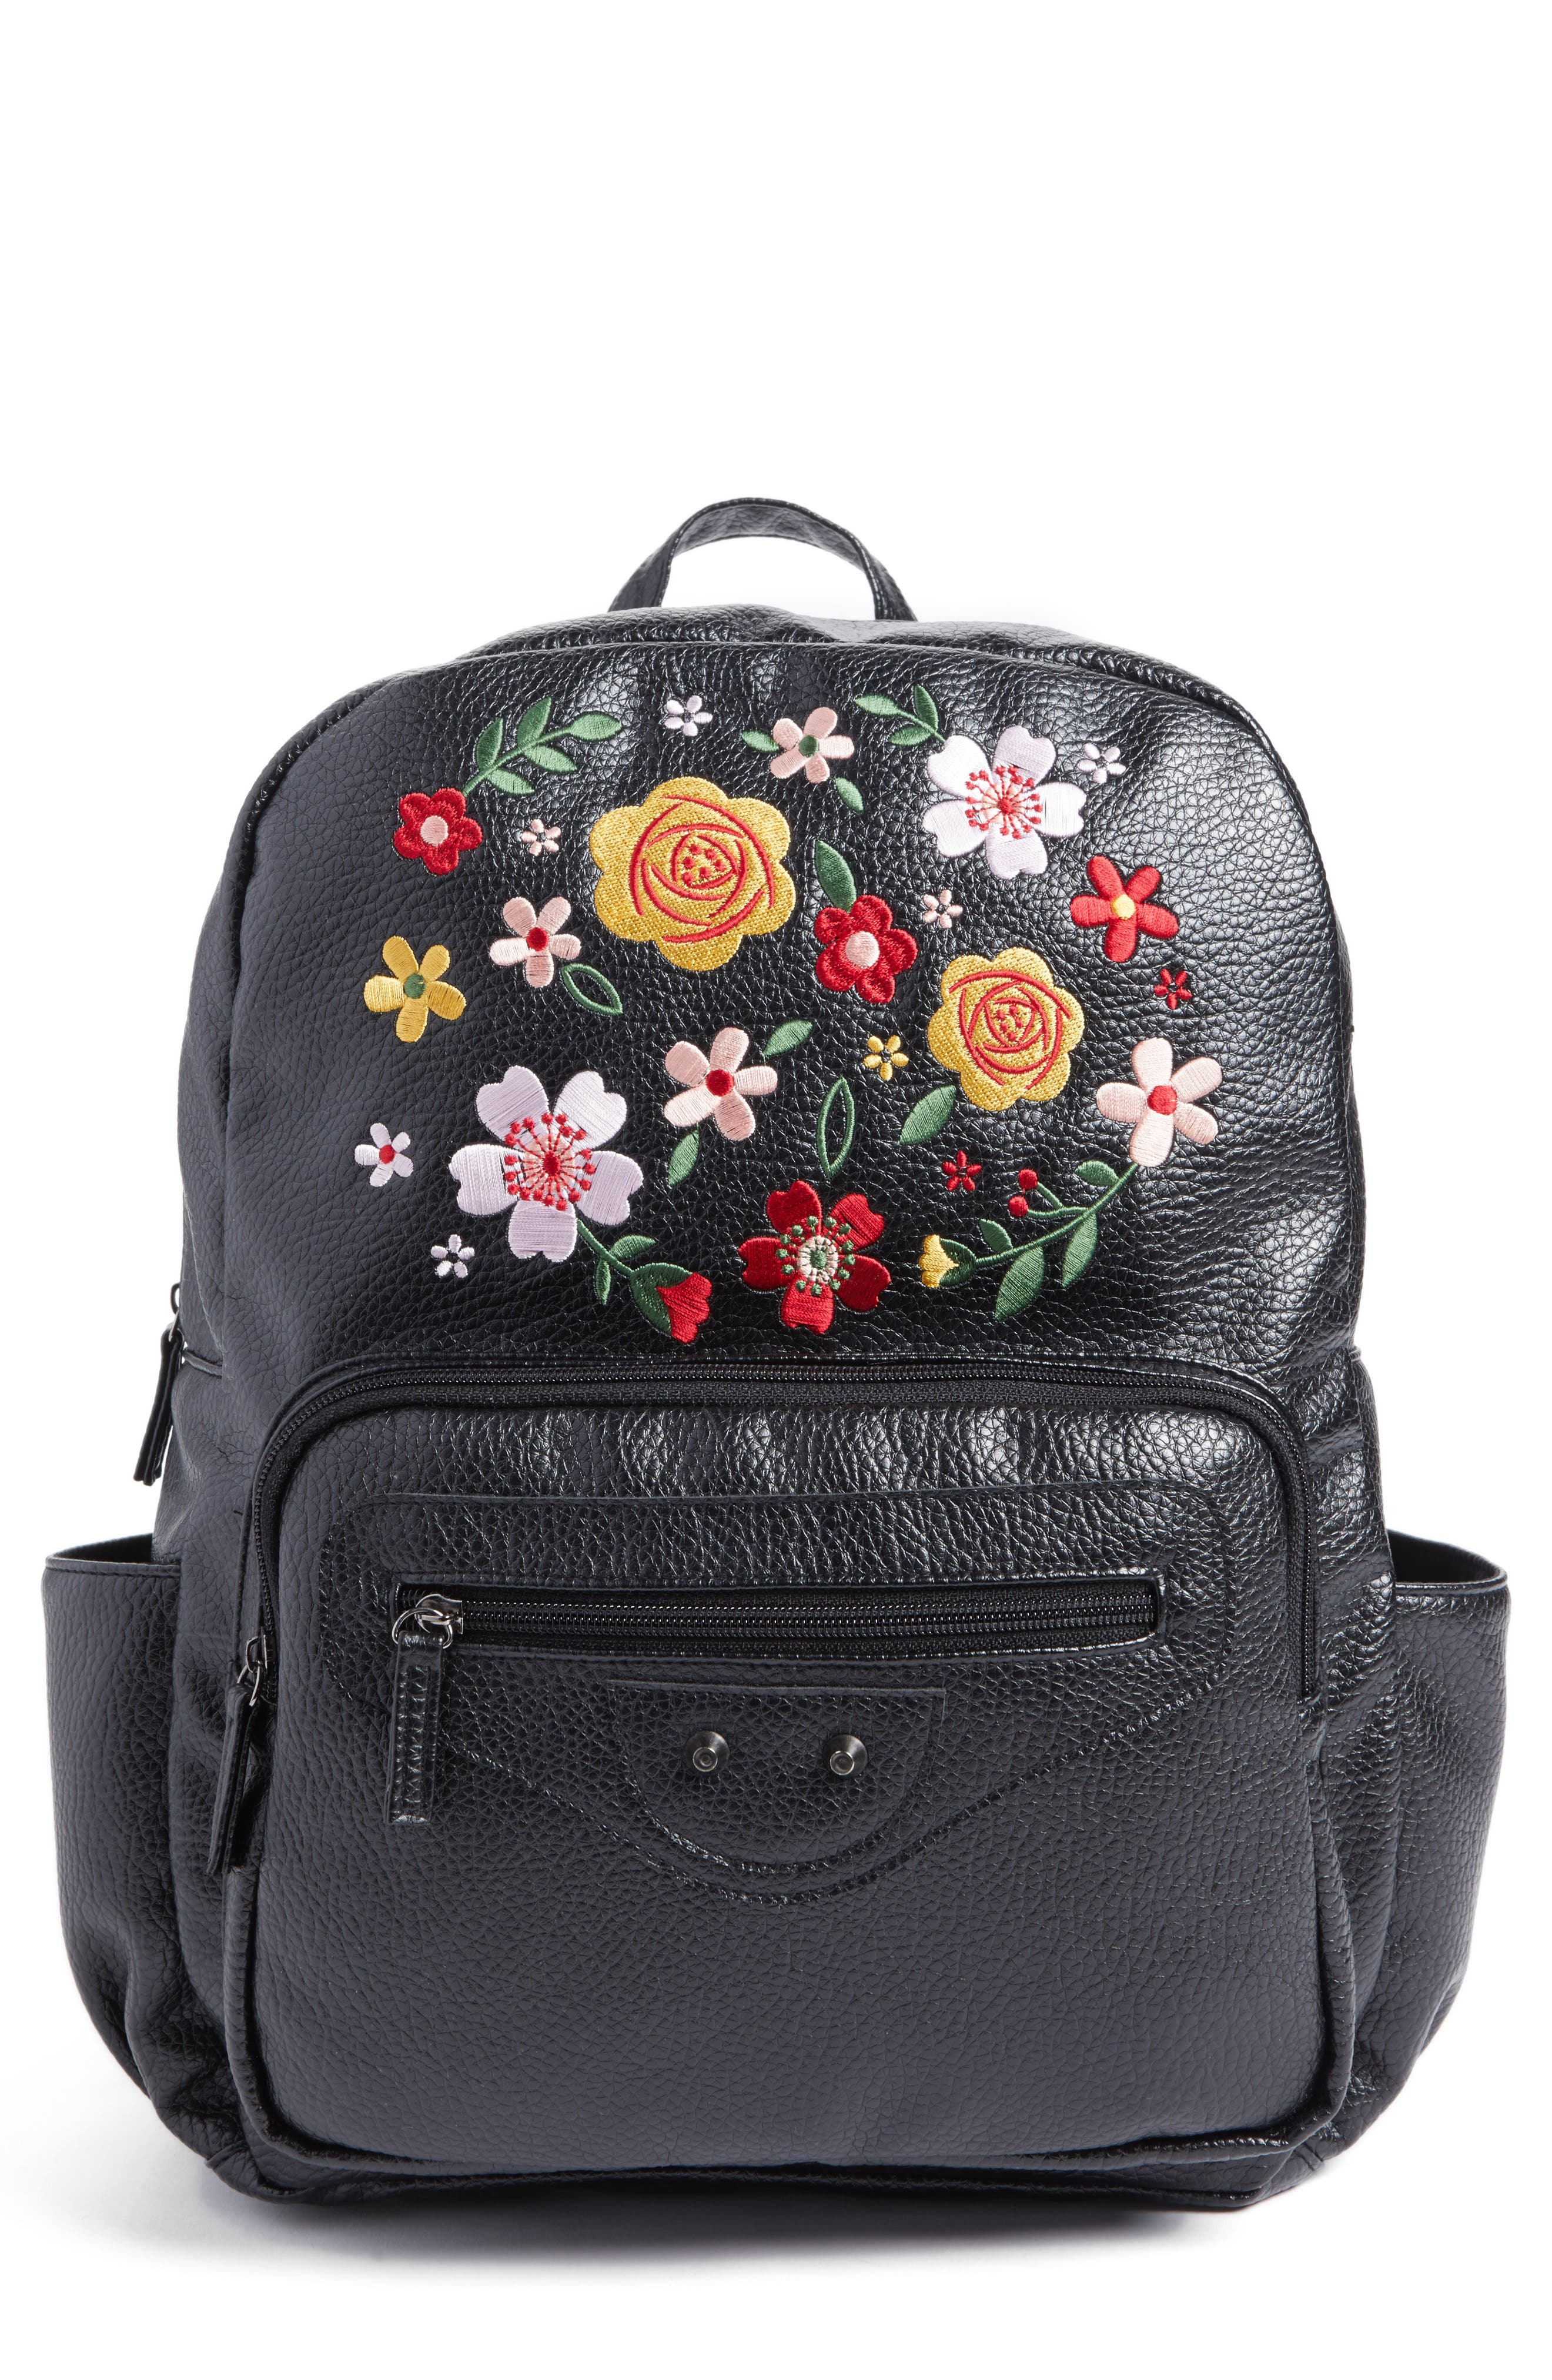 TUCKER + TATE Embroidered Backpack